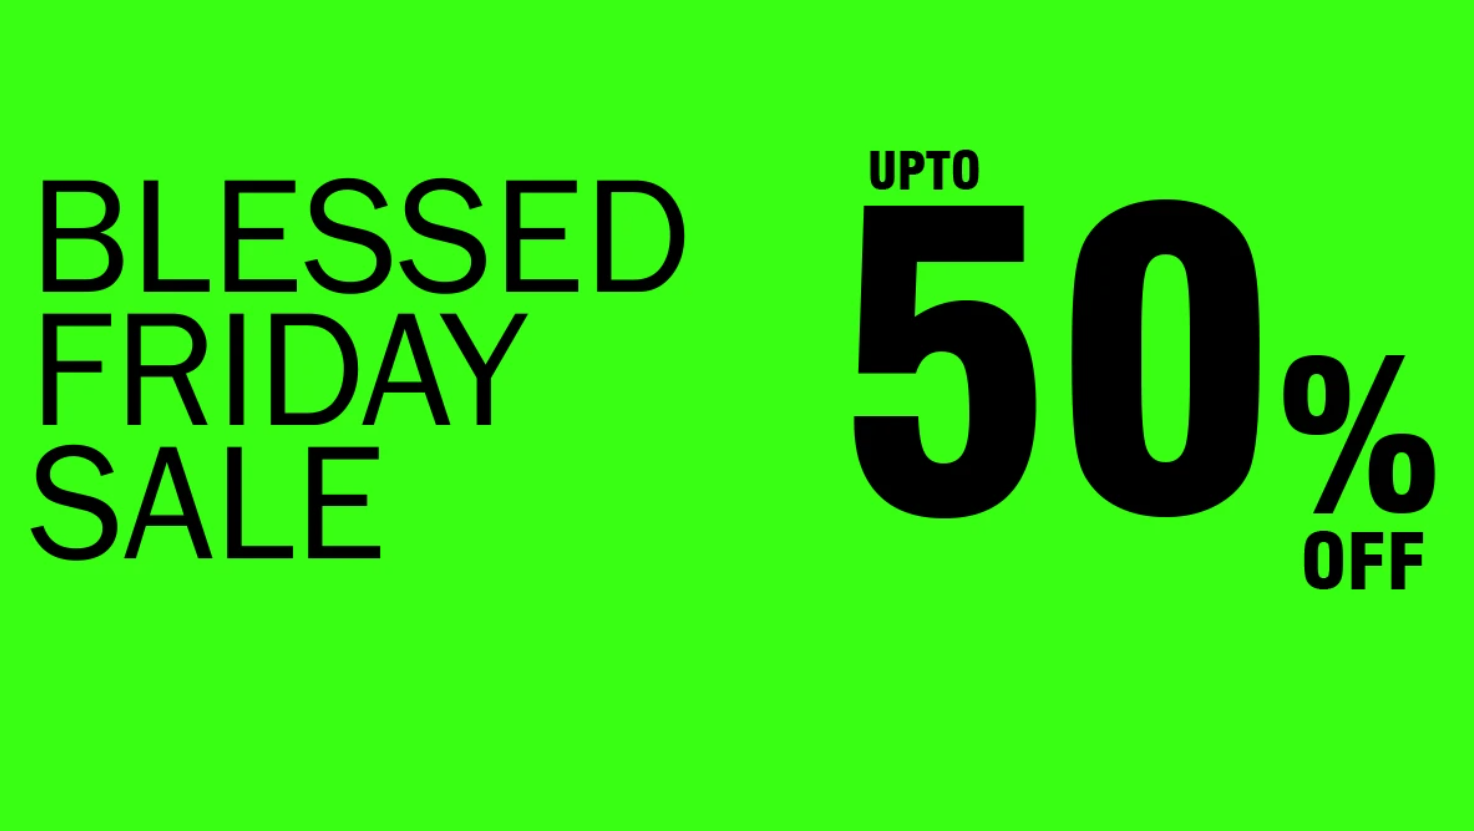 Breakout - Blessed Friday Sale